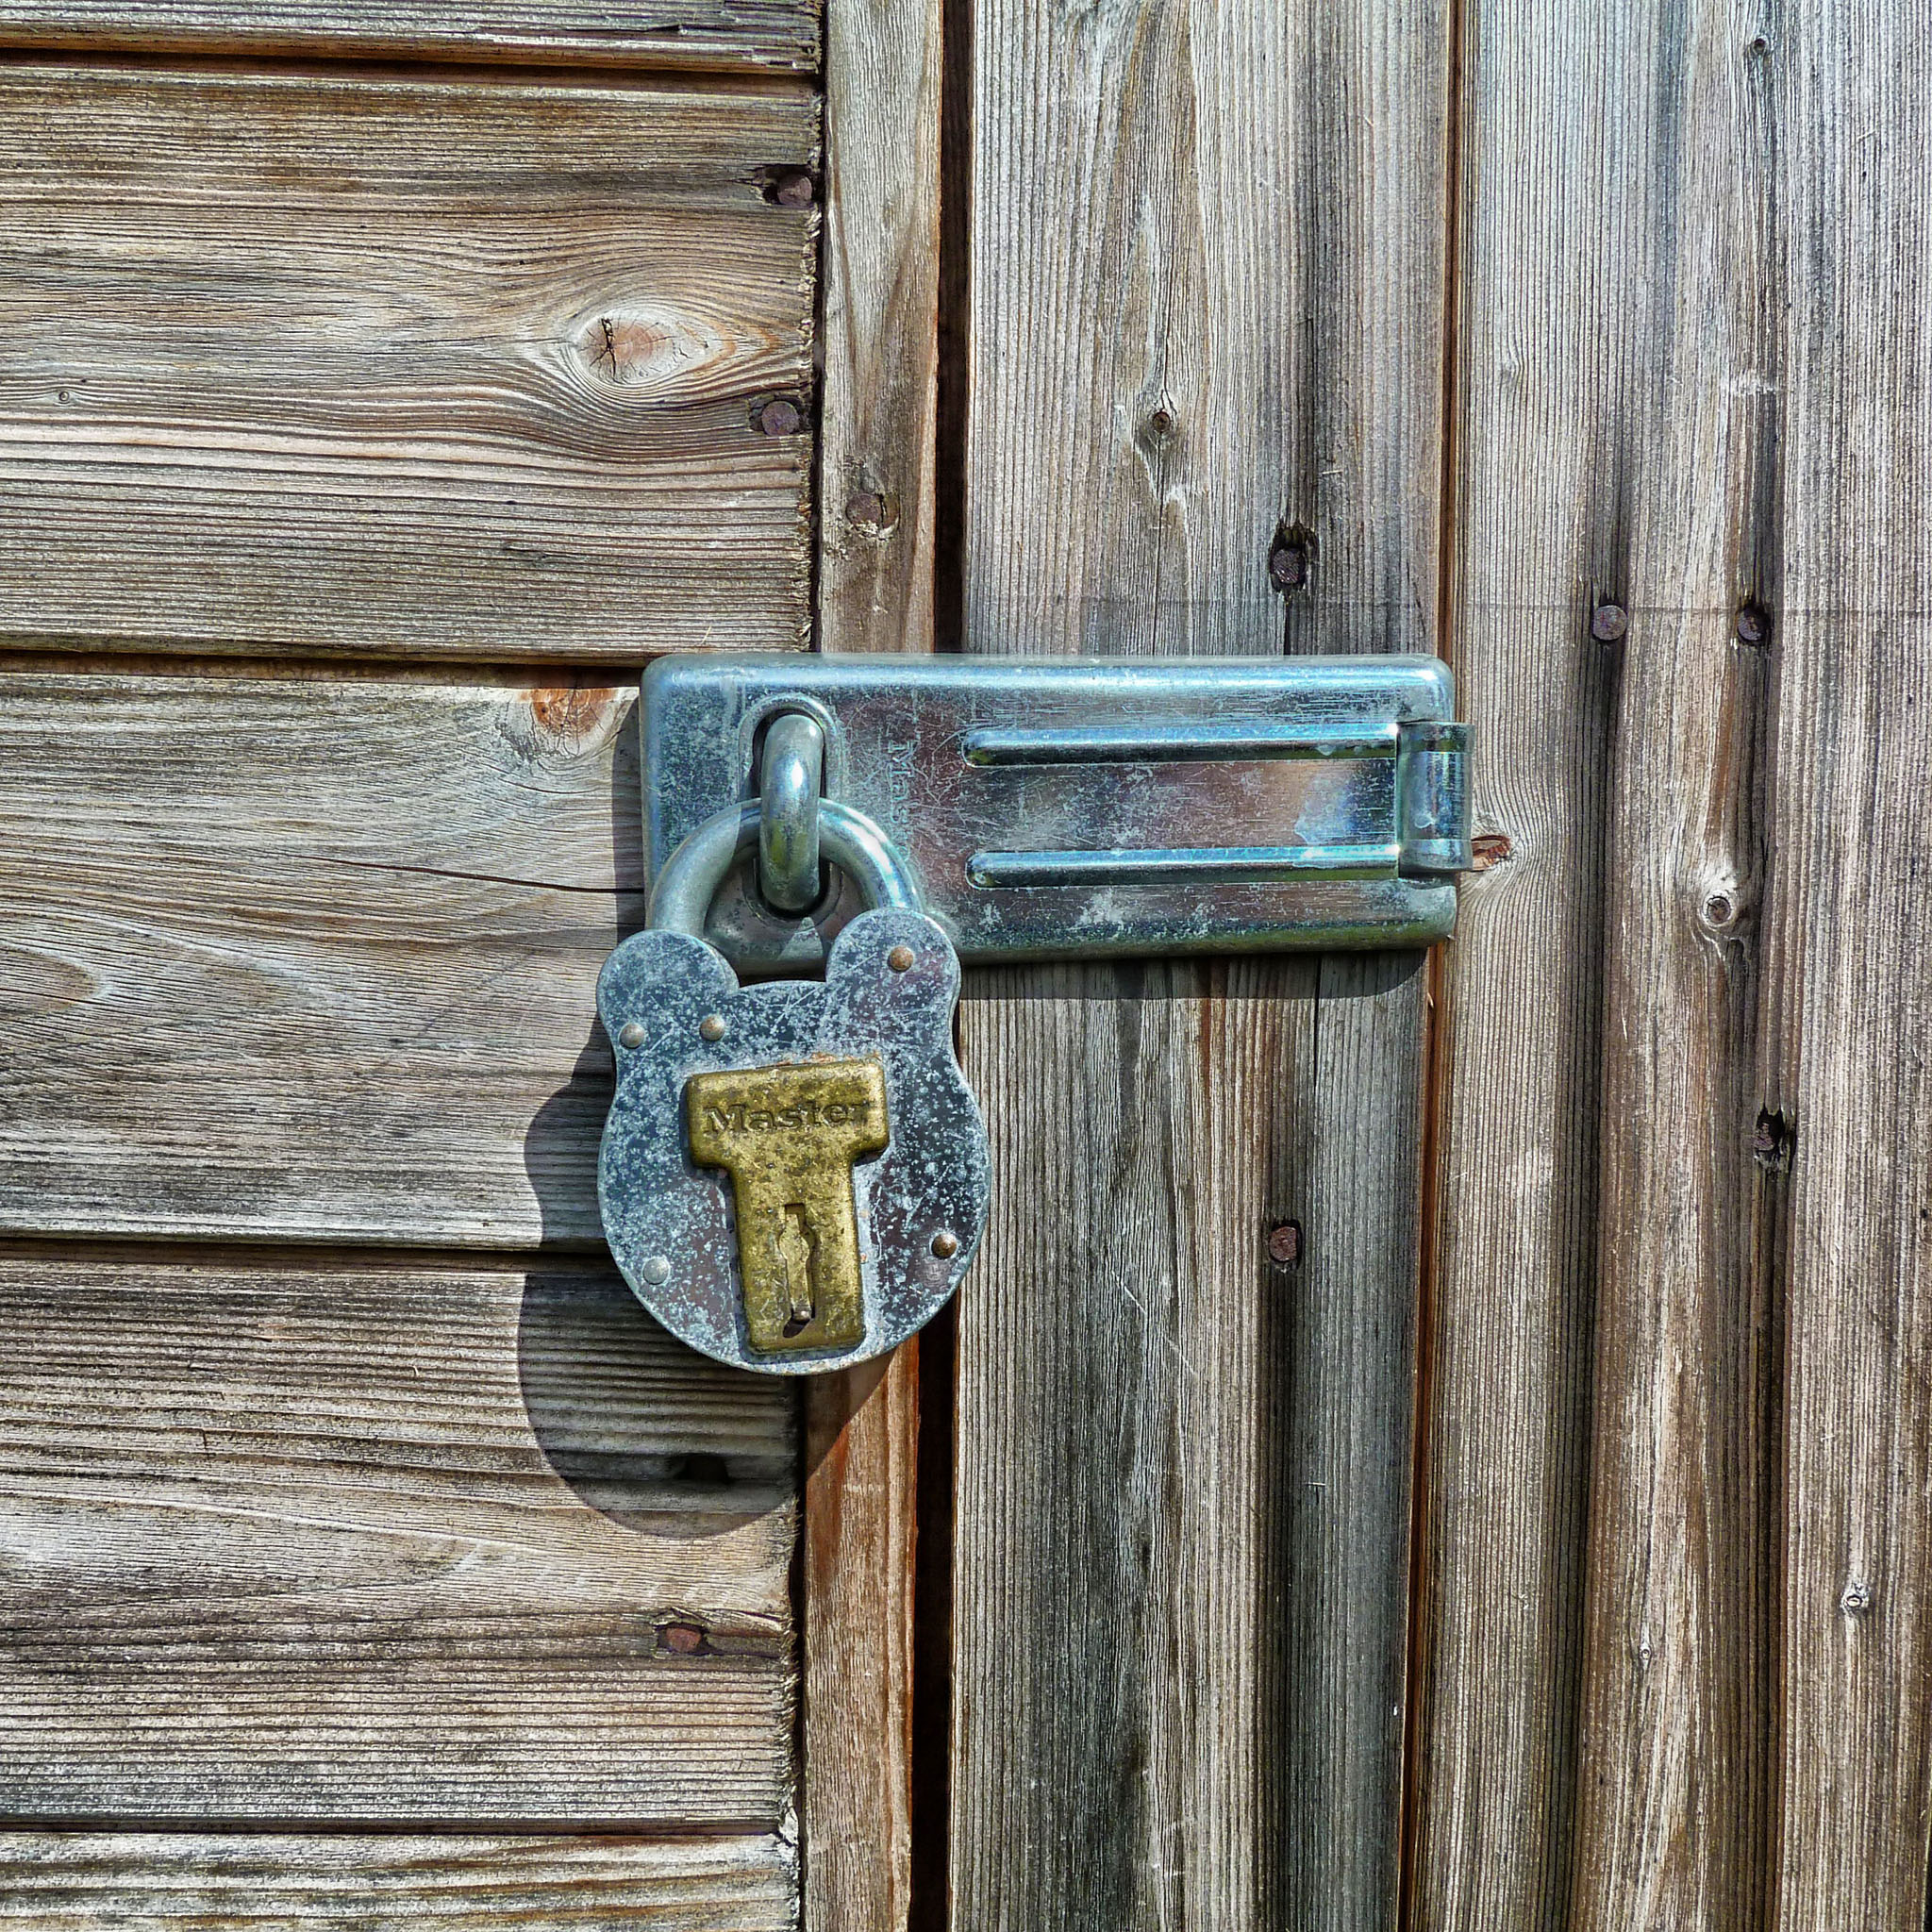 david mark - hanging lock wooden door ipad wallpaper